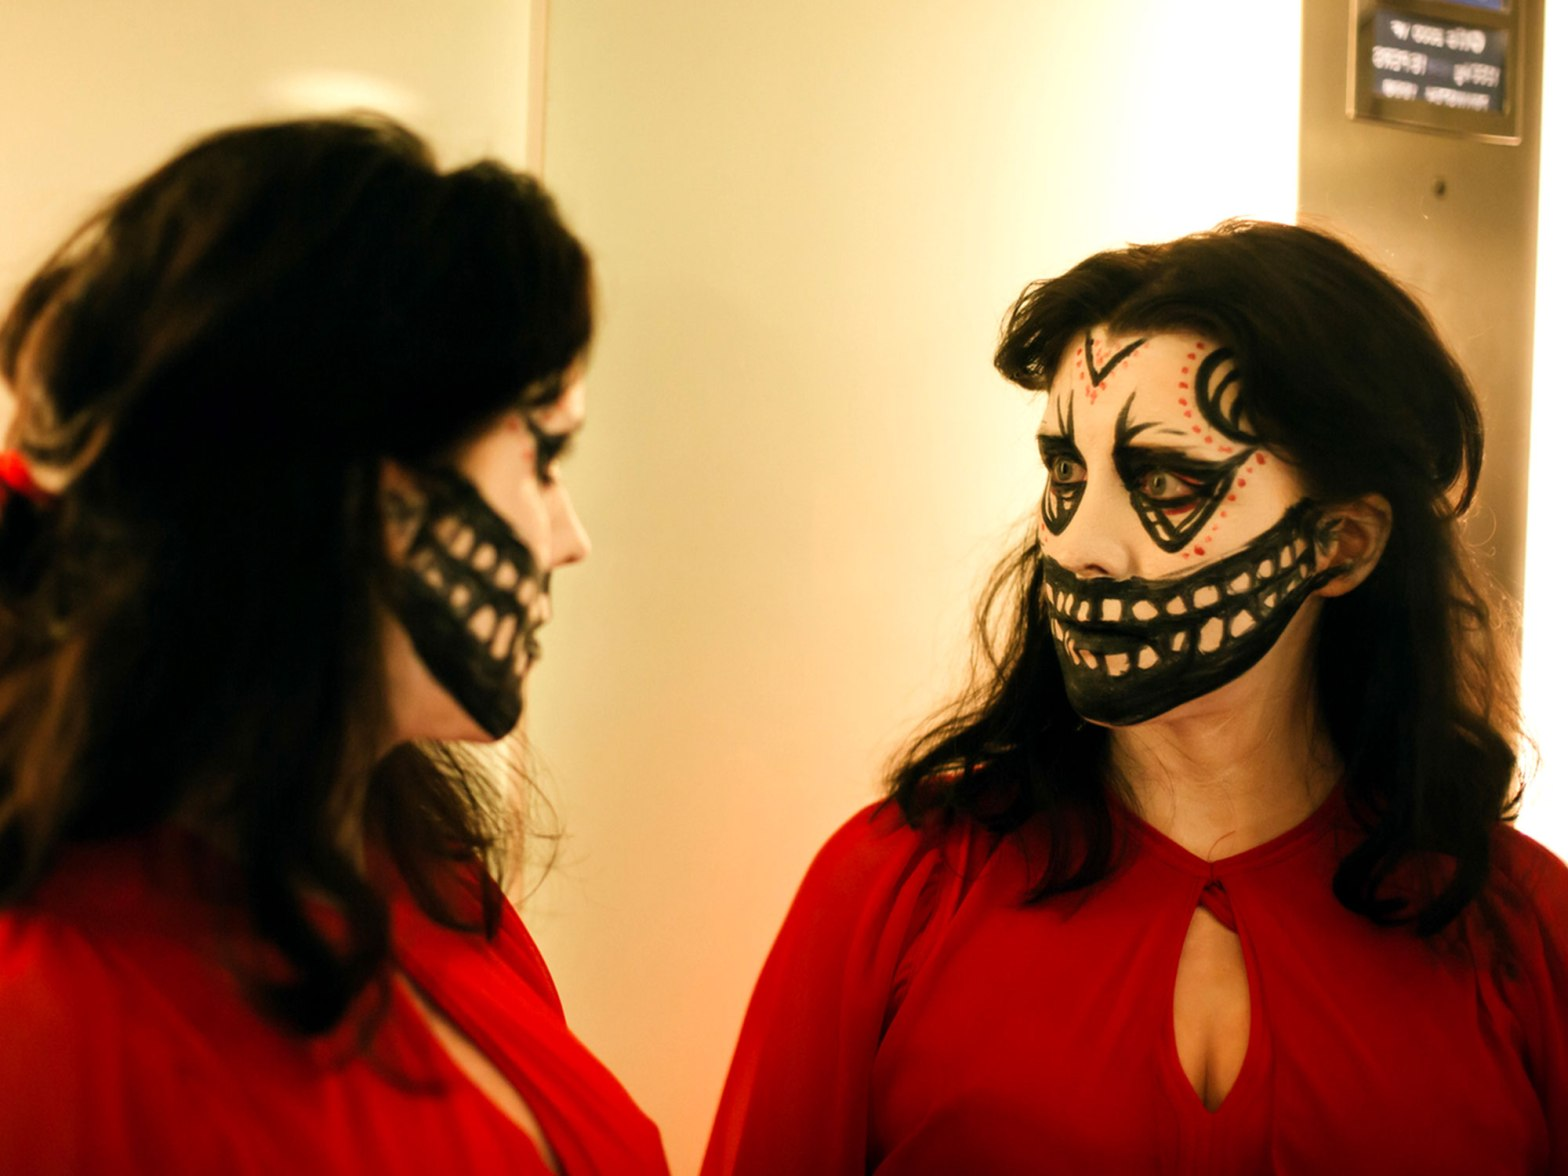 A woman wearing a red dress and skull face-paint, looks at herself in the mirror.